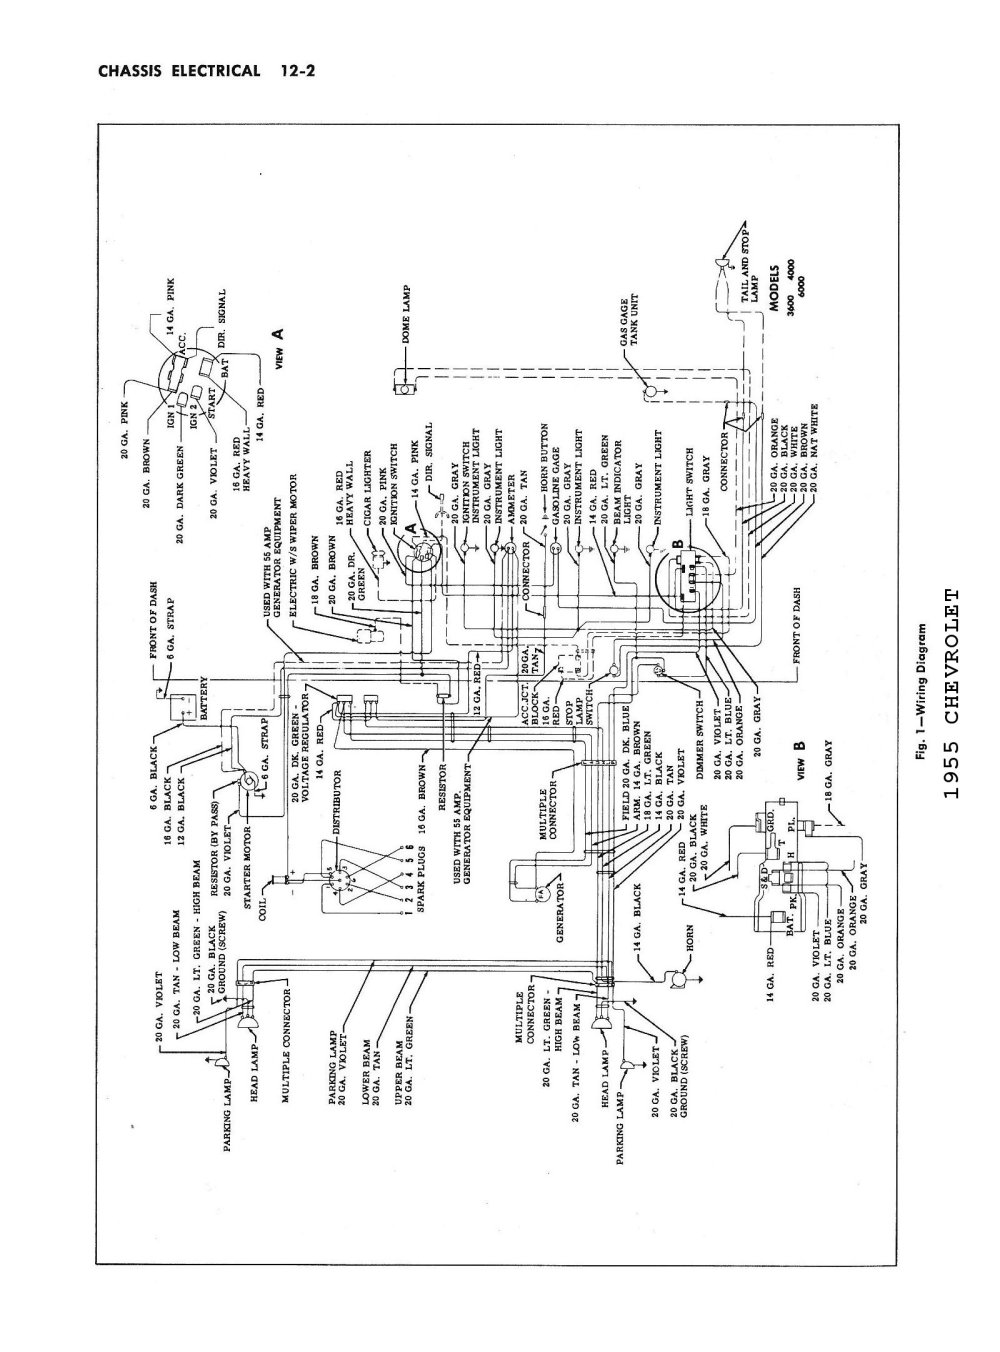 medium resolution of 55 chevy truck wiring diagram wiring diagram for you chevy fuel pump 1955 chevy wire diagram